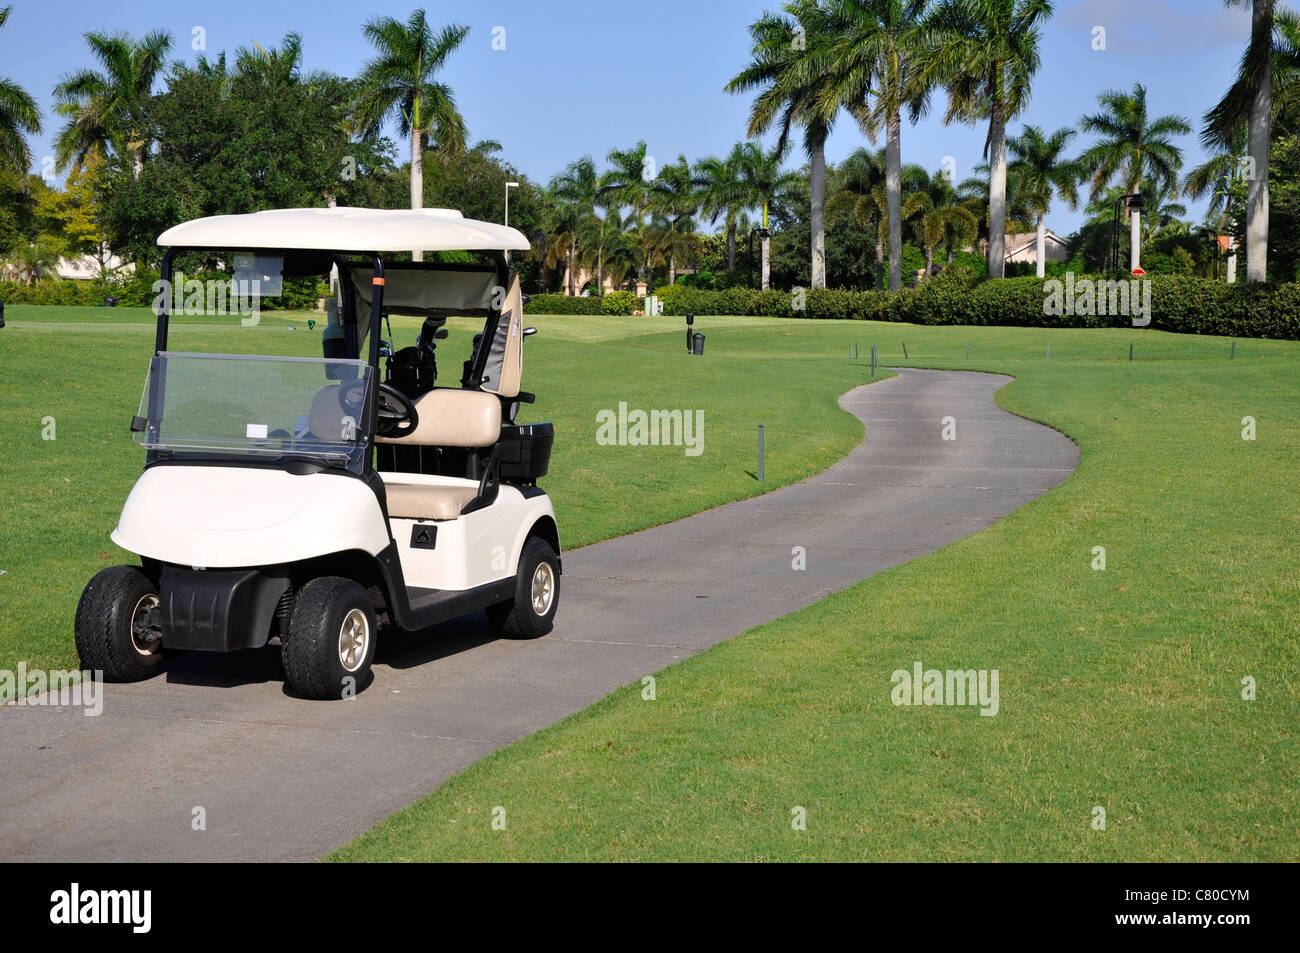 Empty golf cart sitting on a macadam path by a golf course - Stock Image